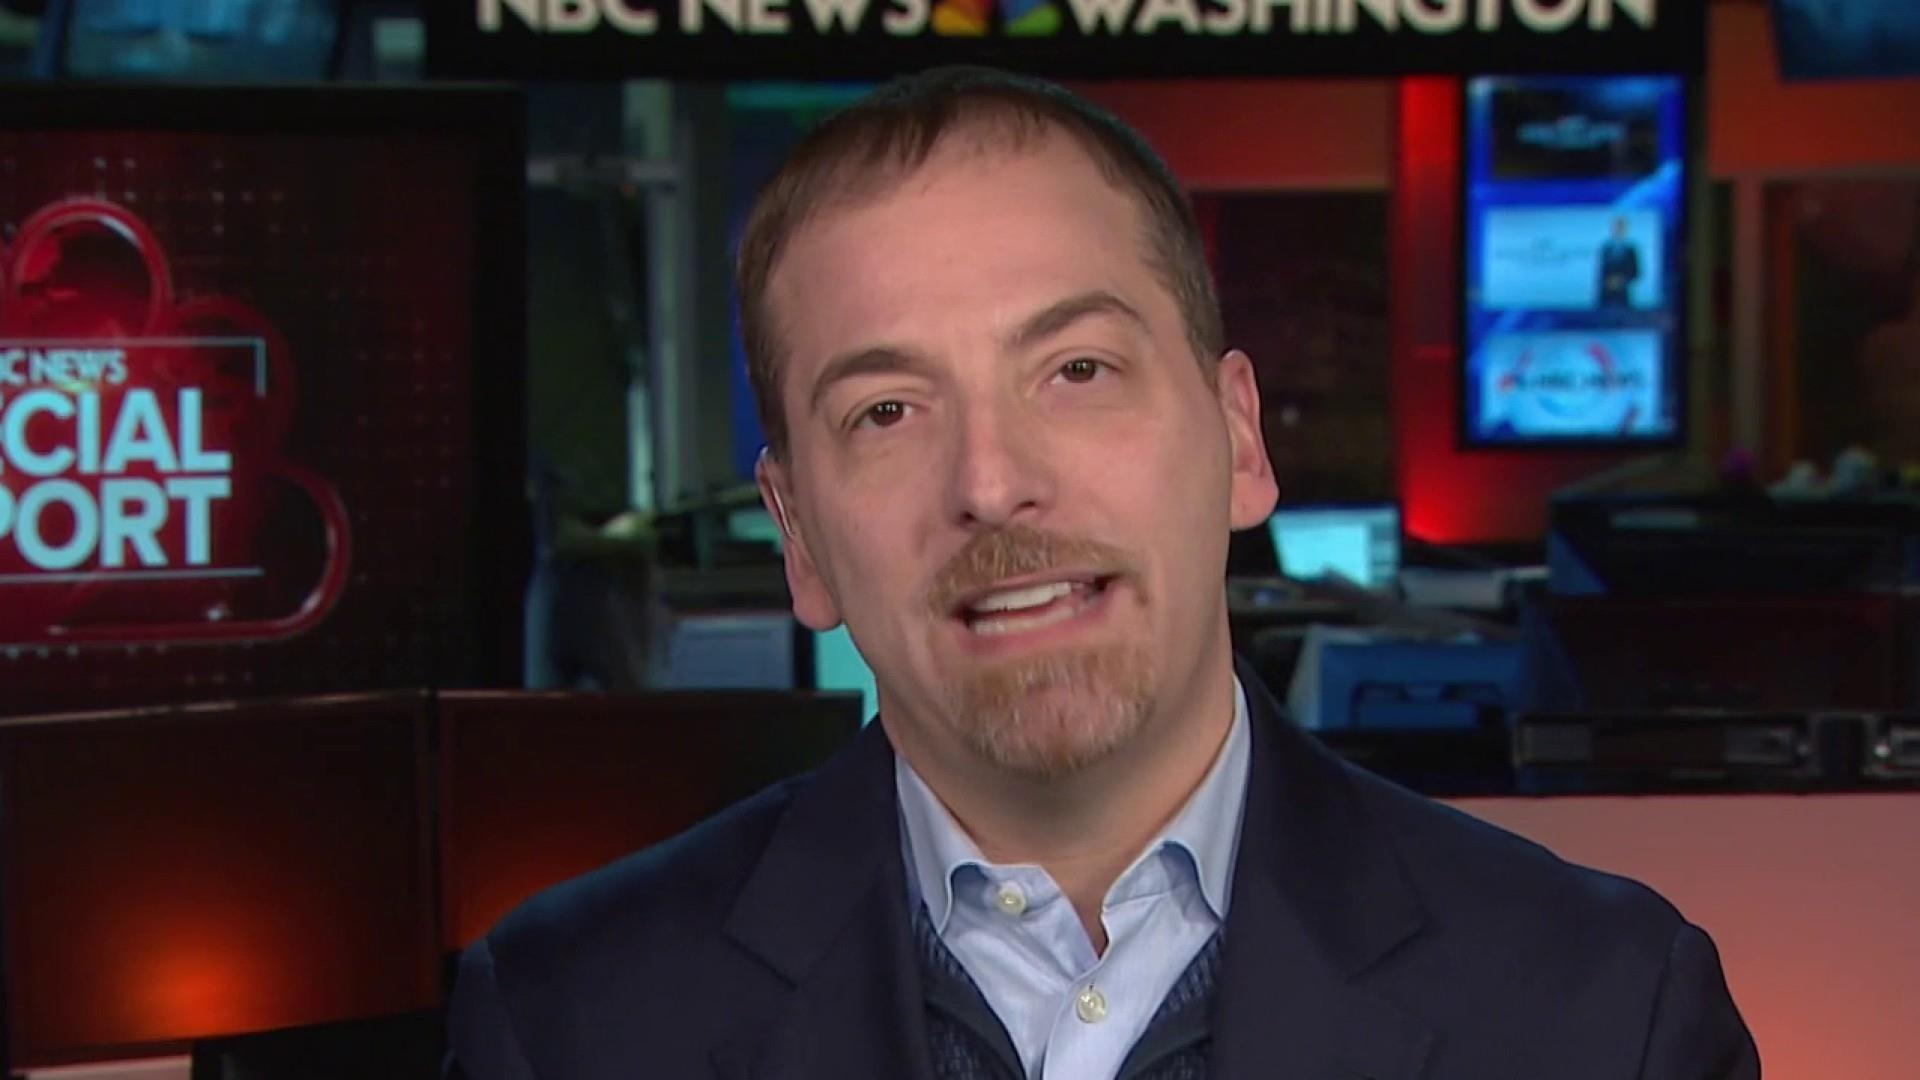 Mueller Report summary: Trump will feel 'quite vindicated' says Chuck Todd